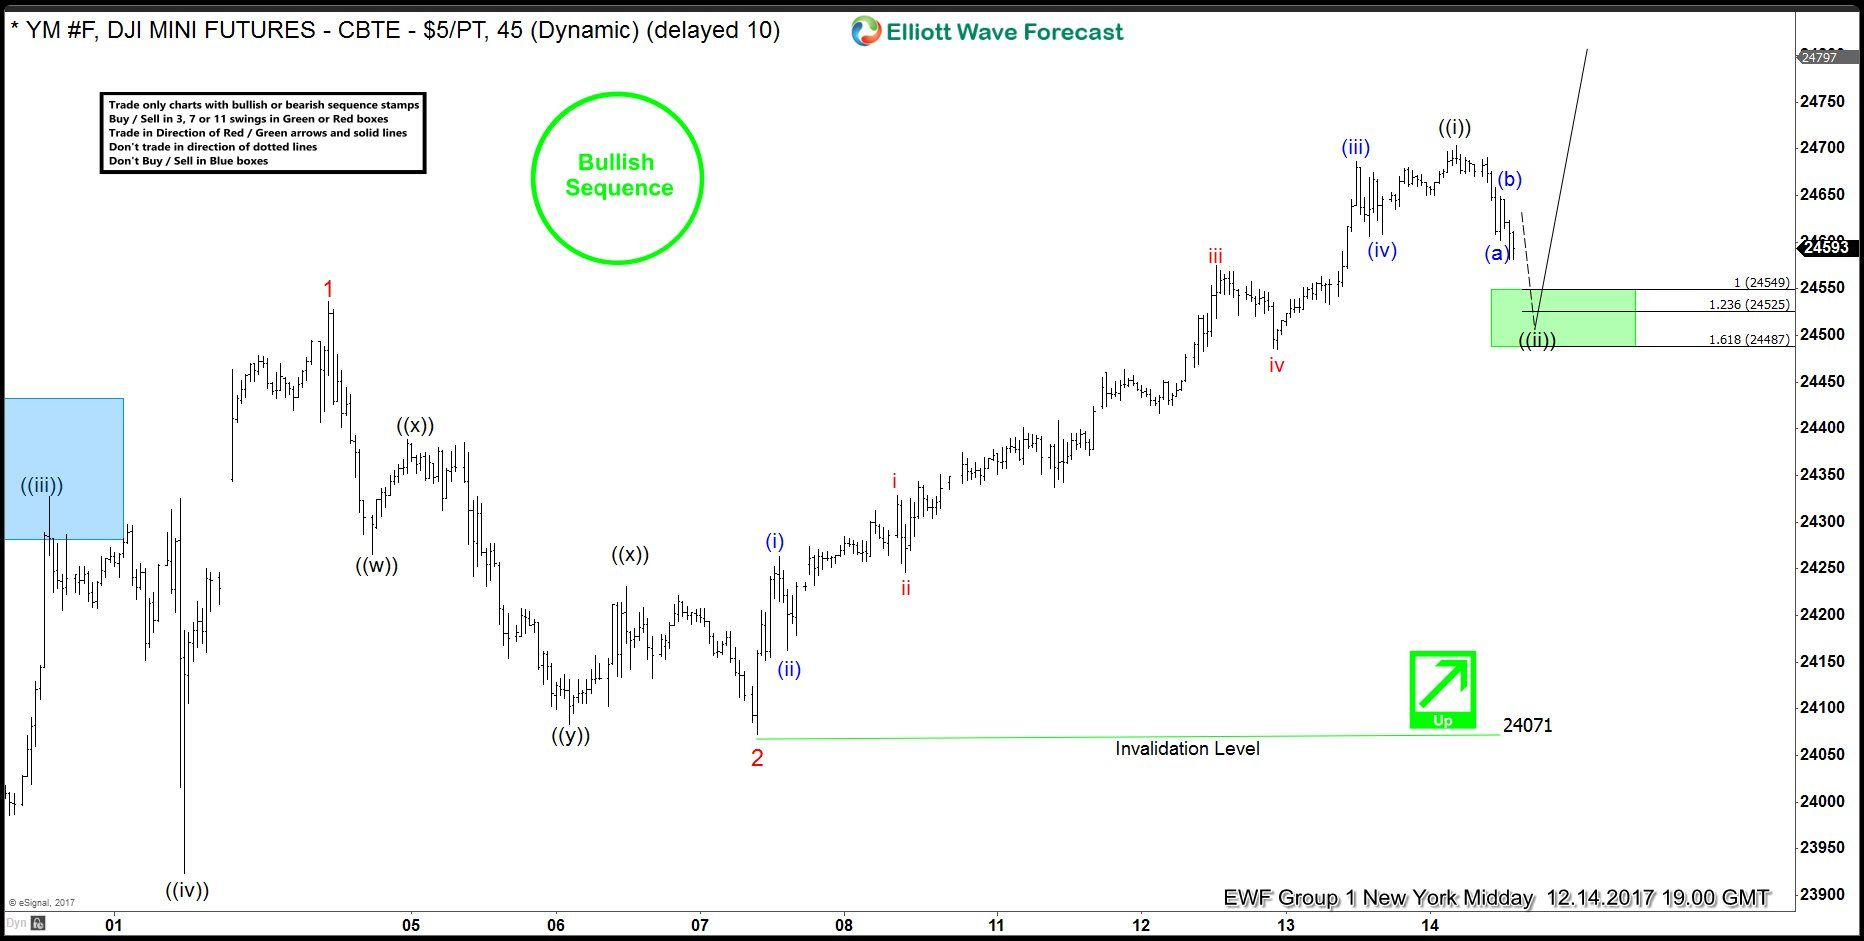 Dow Jones Ym F Buying Dips In Extremes Elliott Wave Forecast